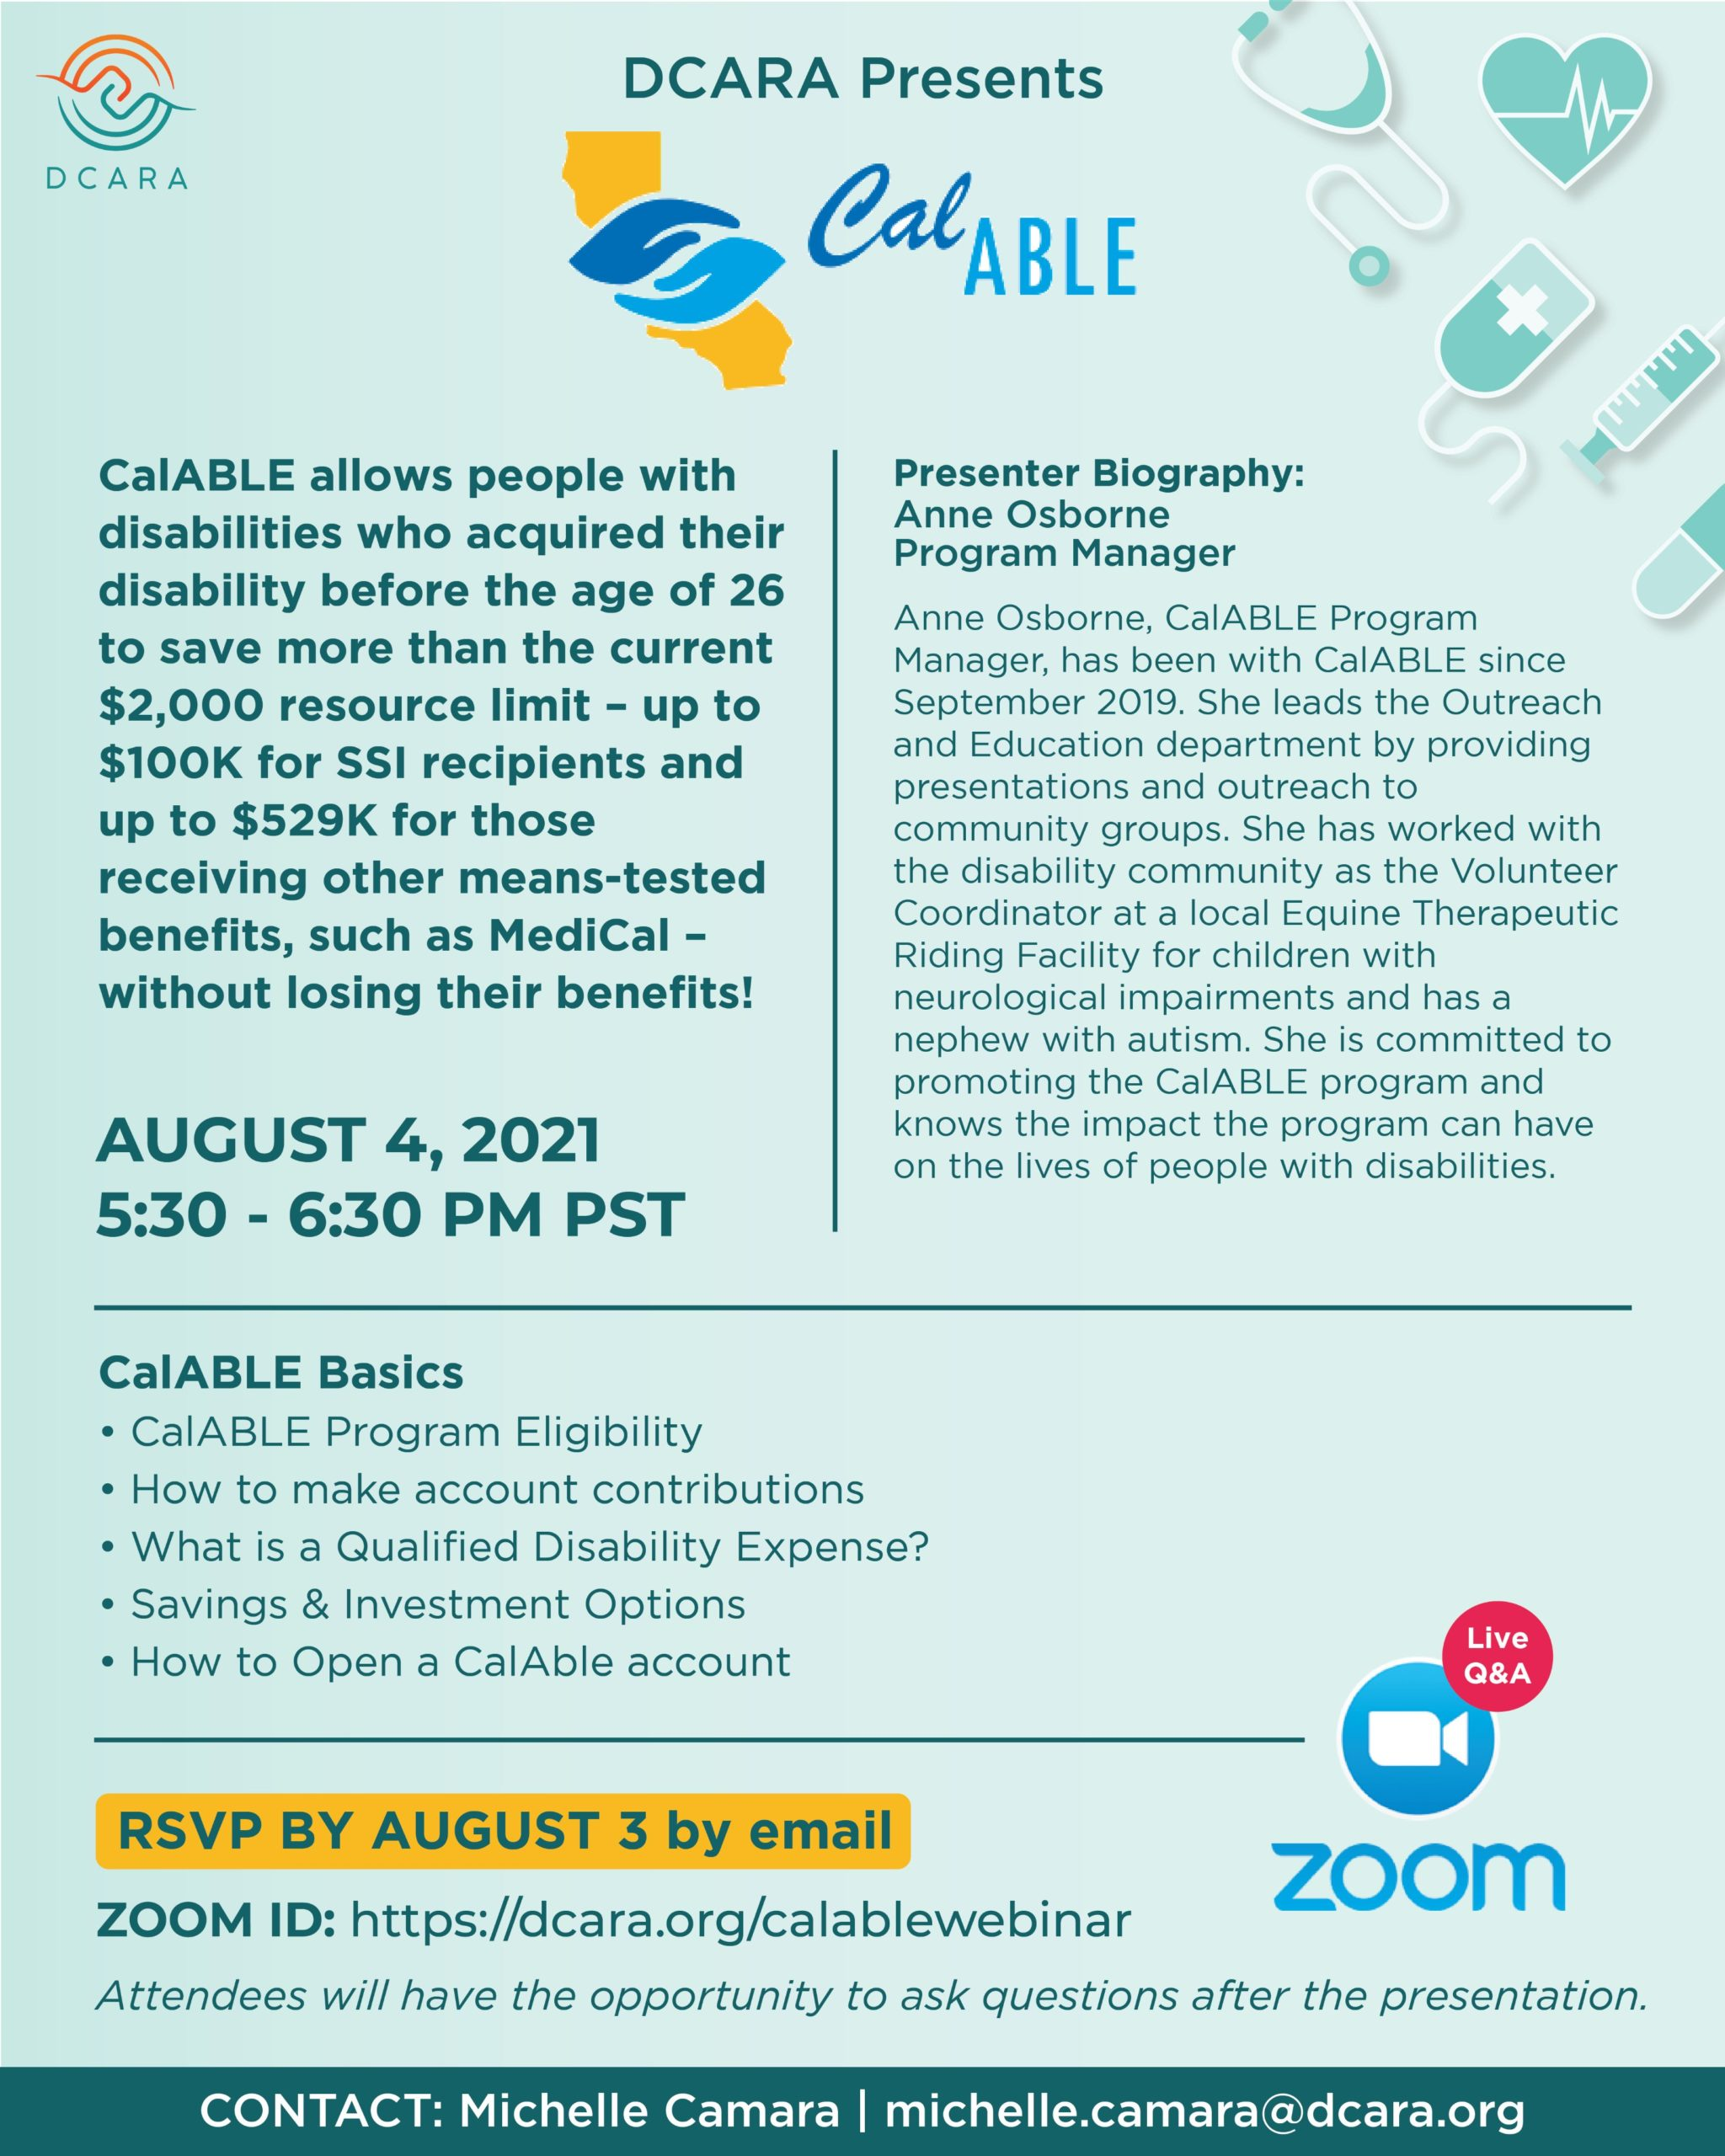 Join DCARA and CalABLE for upcoming live event via webinar. CalABLE allows people with disabilities who acquired their disability before the age of 26 to save more than the current $2,000 resource limit – up to $100K for SSI recipients and up to $529K for those receiving other means-tested benefits, such as Medicaid – without losing their benefits! August 4th, 2021 at 5:30 PM PST LIVE on Zoom and Q & A at the end of the Webinar RSVP by August 3rd, 2021 More information contact: michelle.camara@dcara.org   VP 510-564-9316